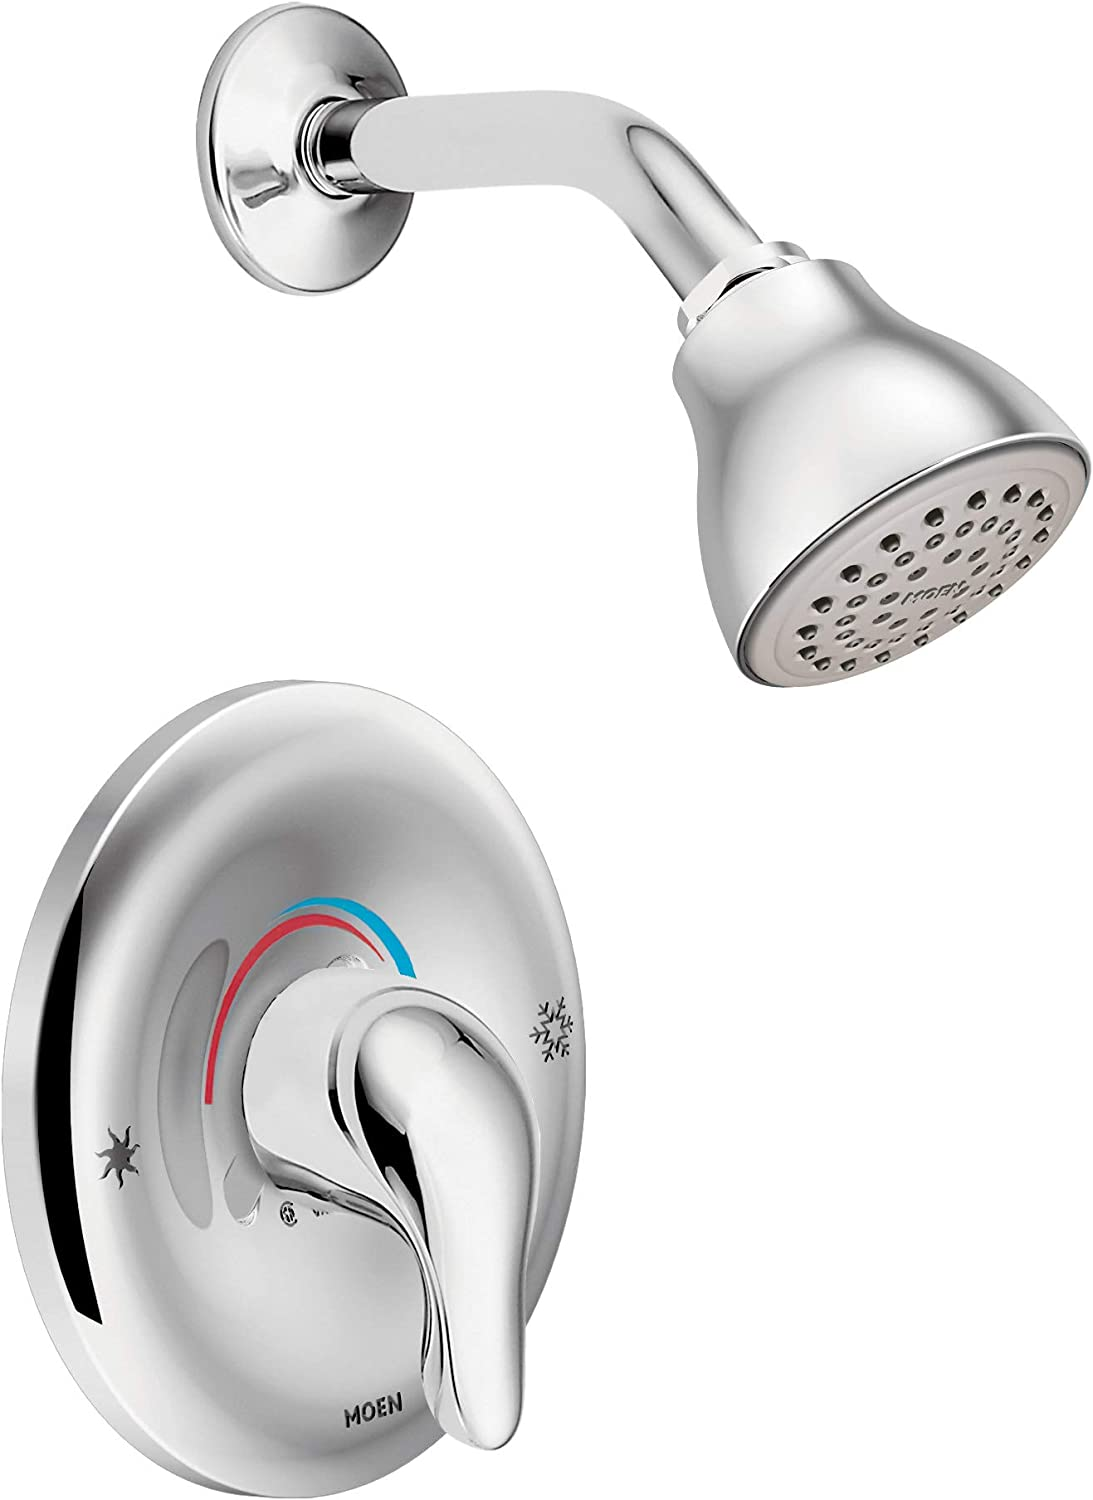 MOEN SHOWER HEAD